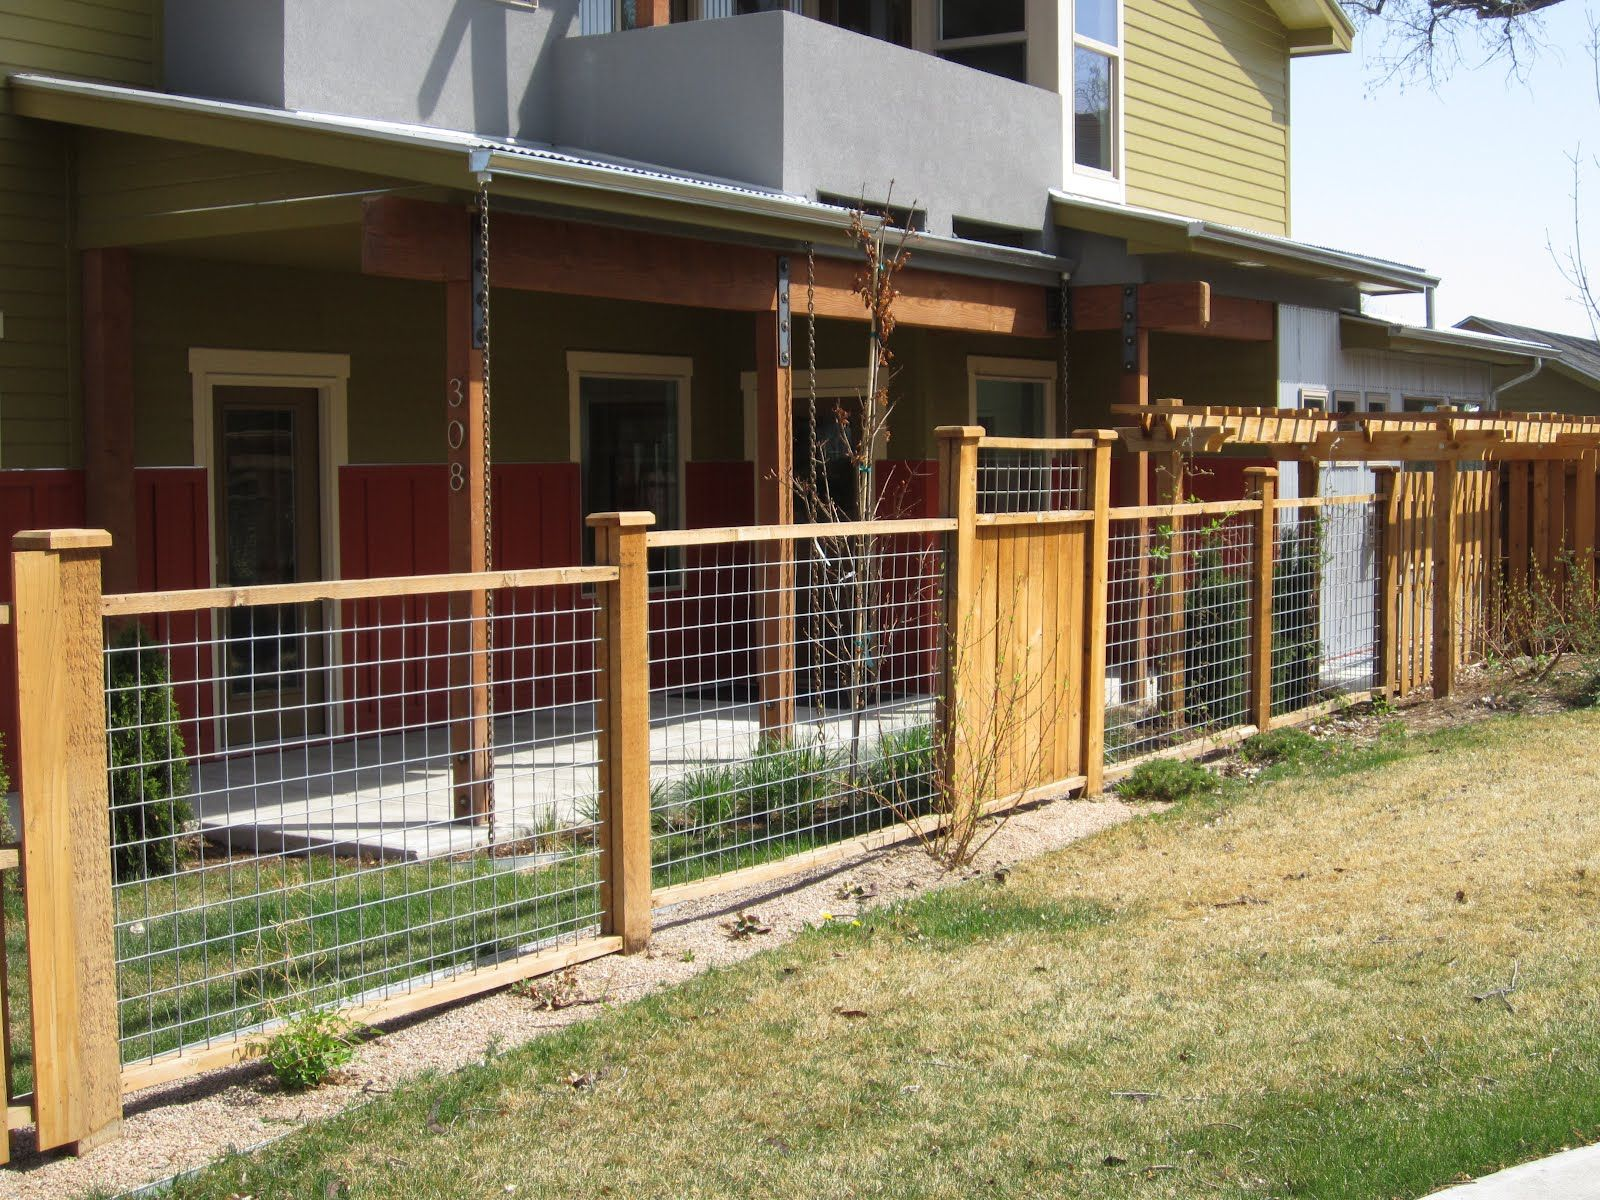 Yard+Fence+Ideas | mix of hog wire fencing and wood panels ...